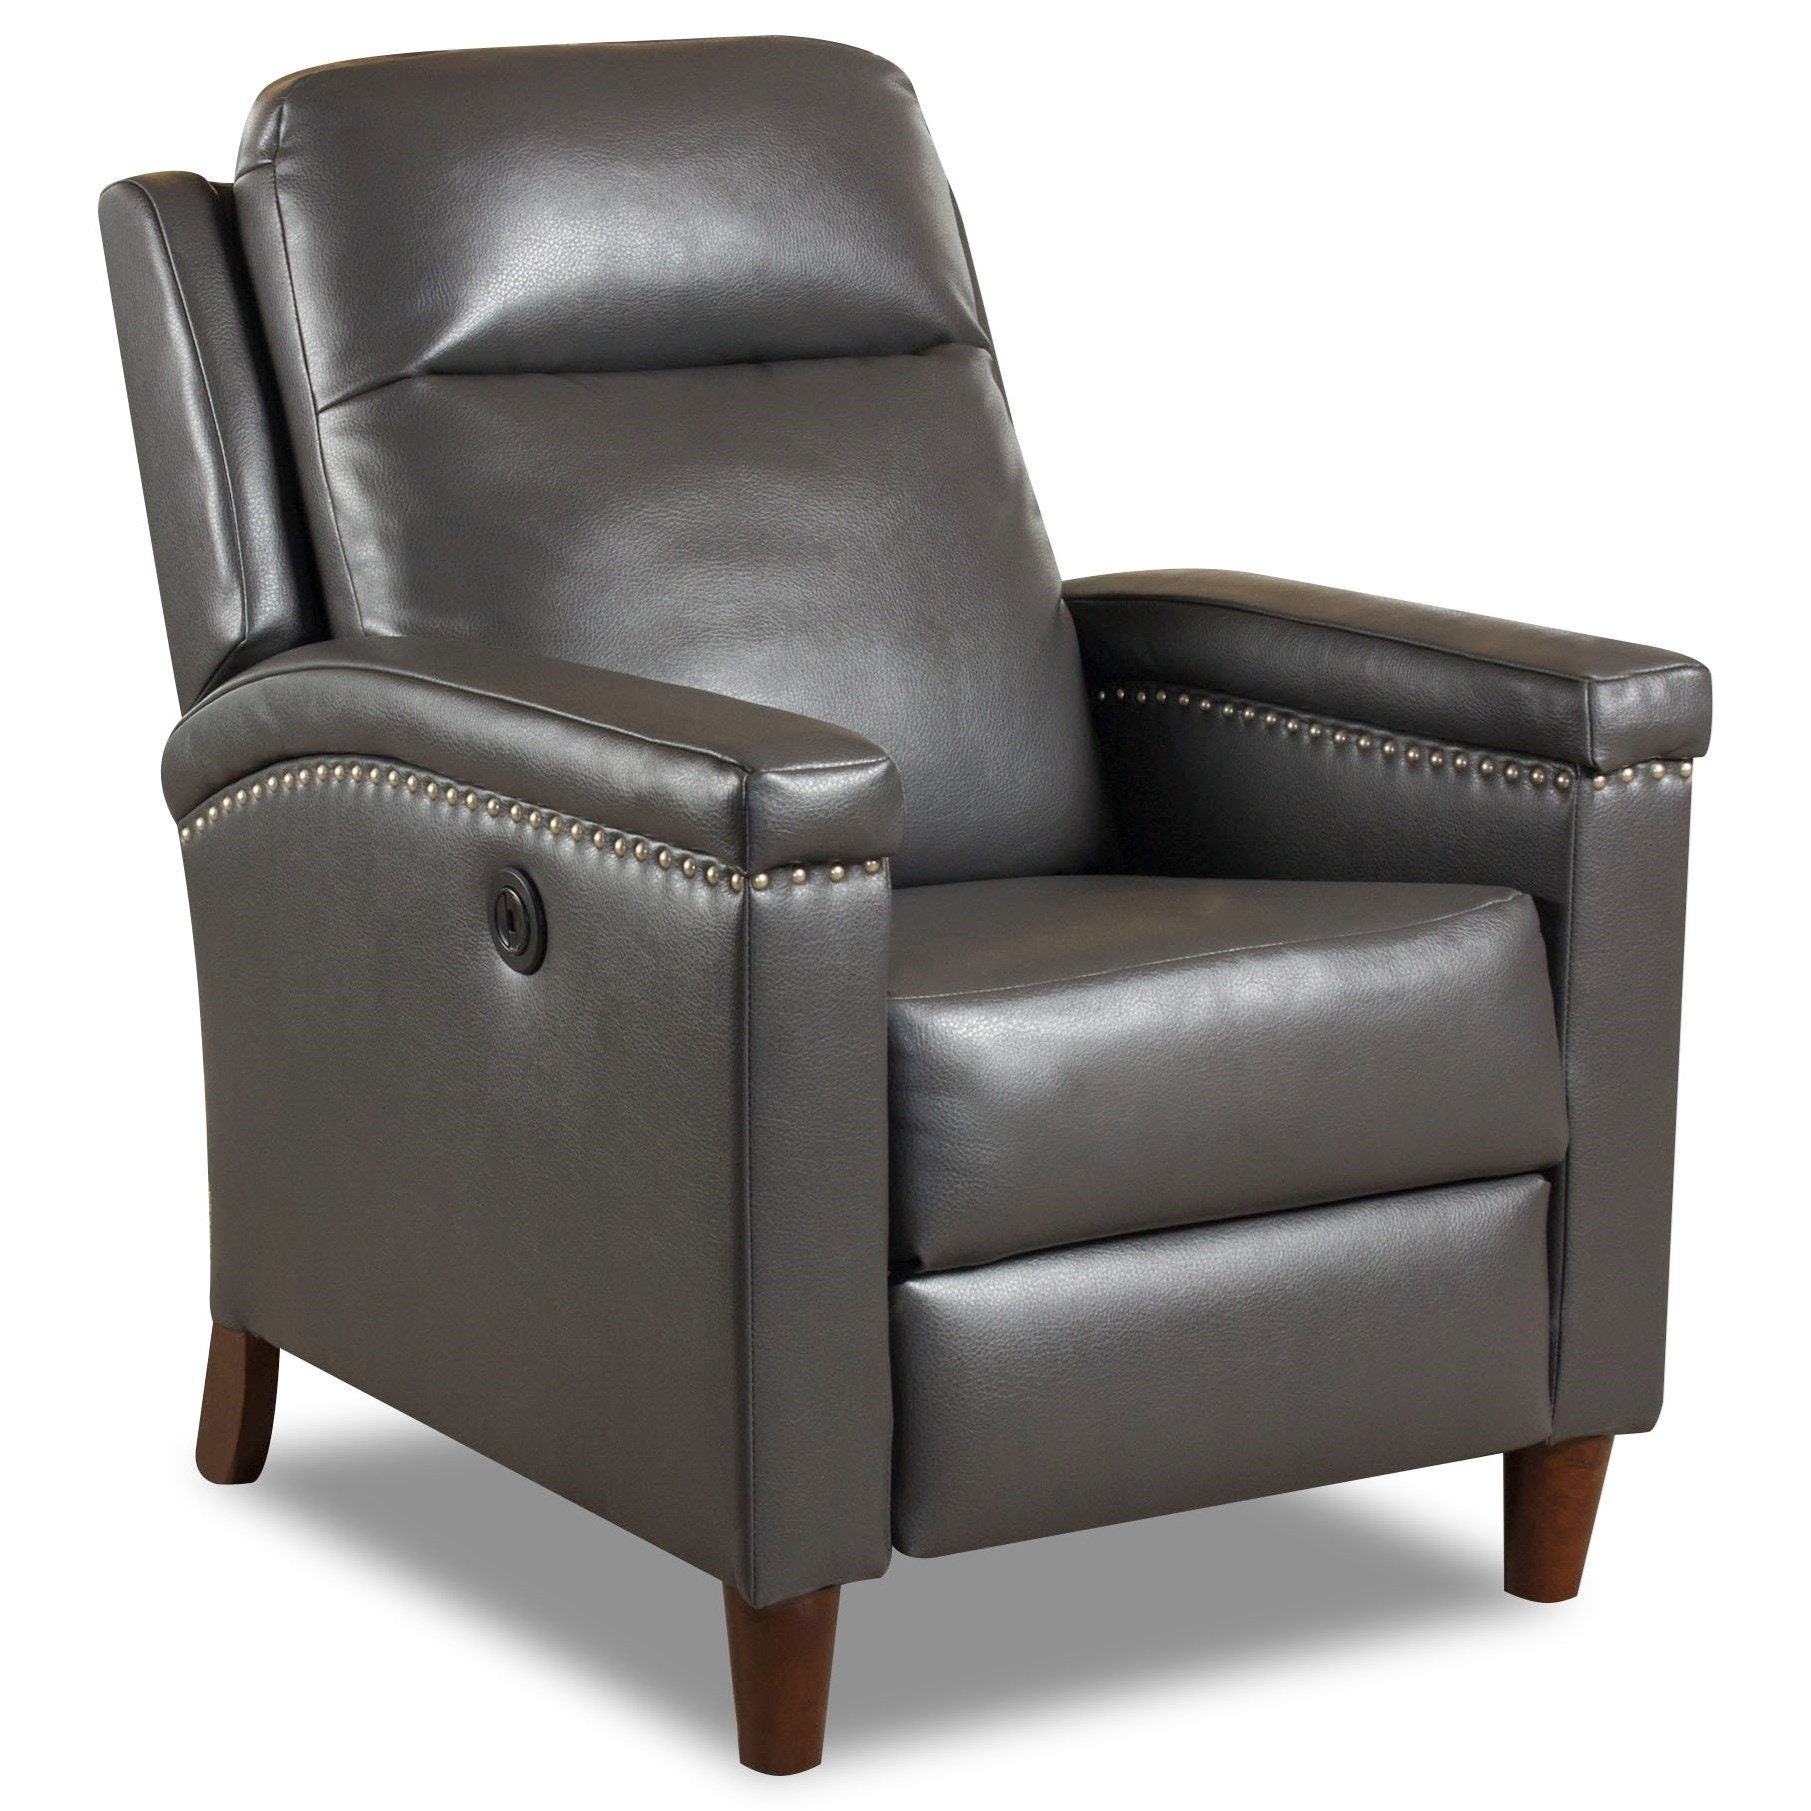 resm1607a high leg recliner resm1607a southern motion - Southern Motion Furniture